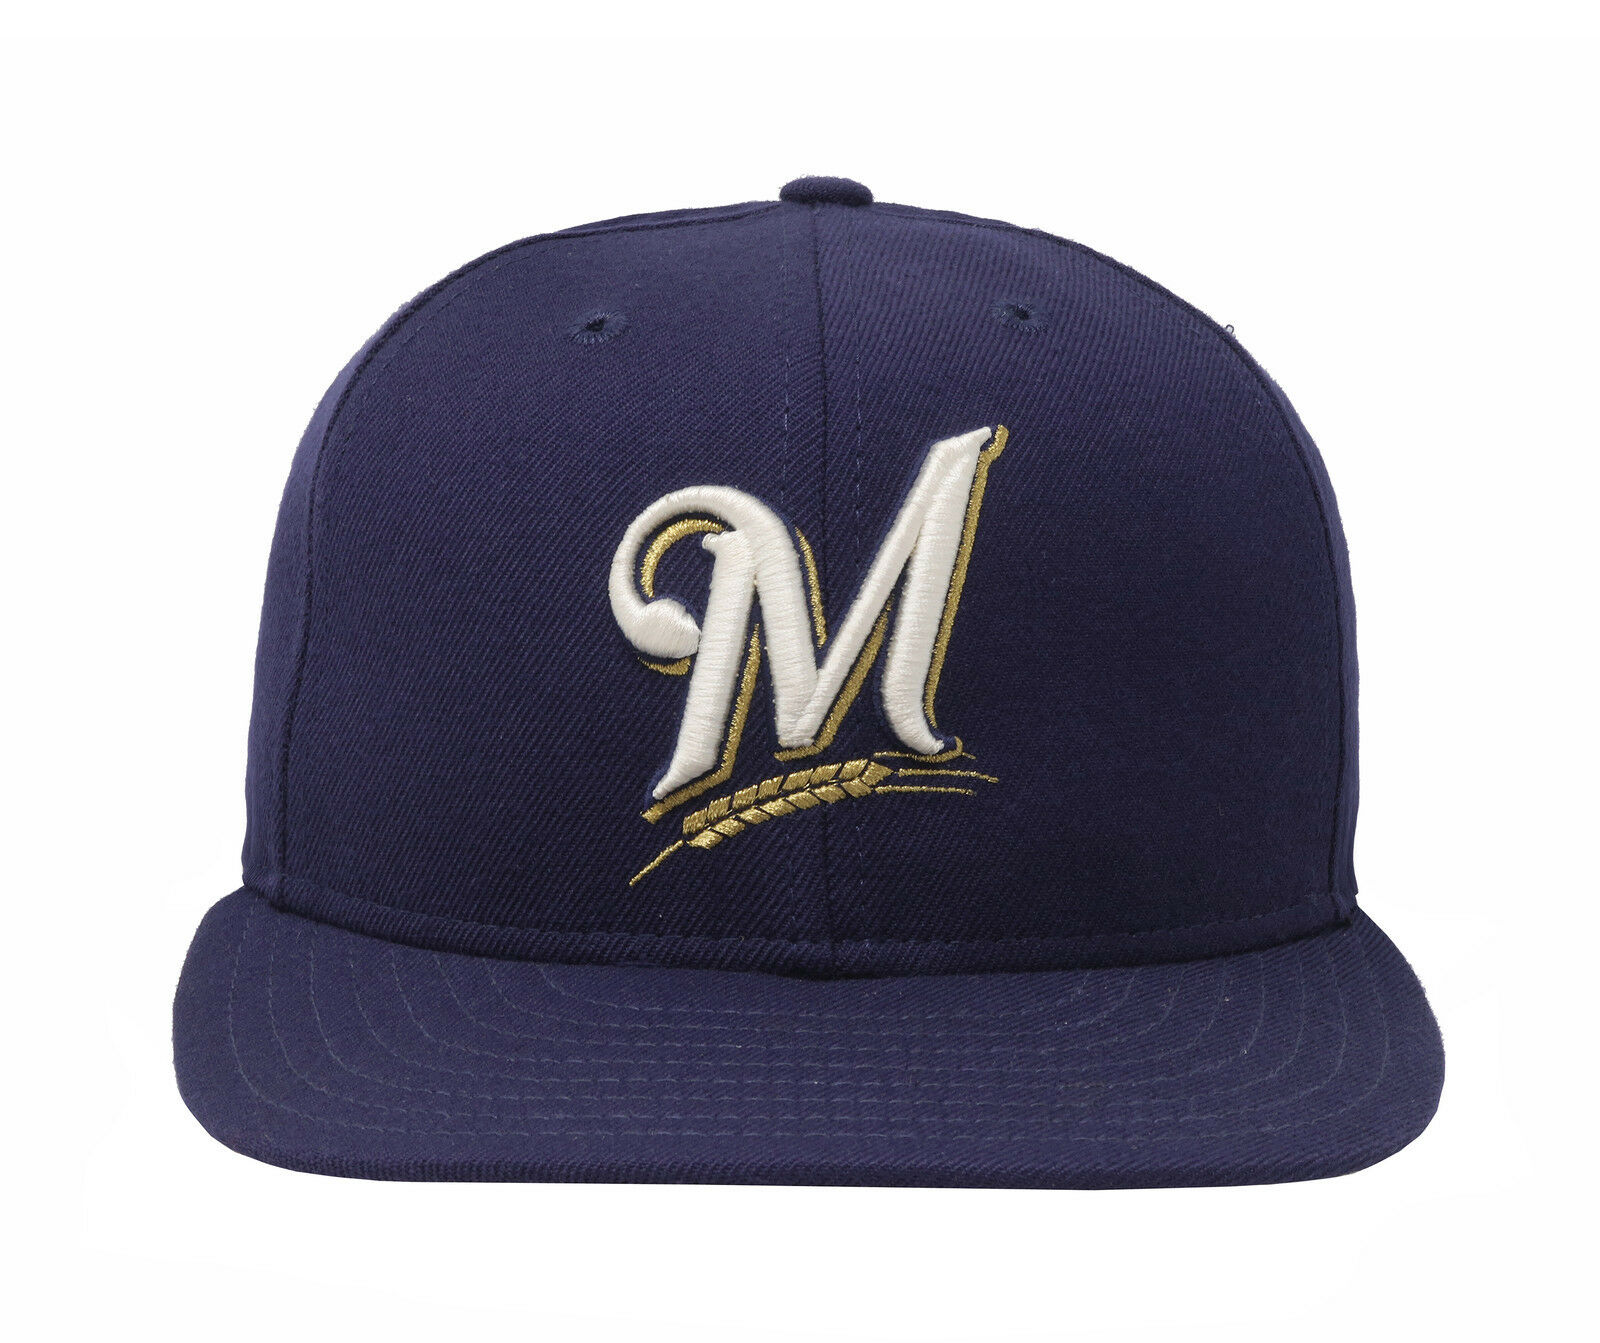 fa2784f483445 ... adjustable hat 416b5 9e6d9  low price new era 59fifty mlb cap milwaukee  brewers mens kids kids kids navy blue fitted